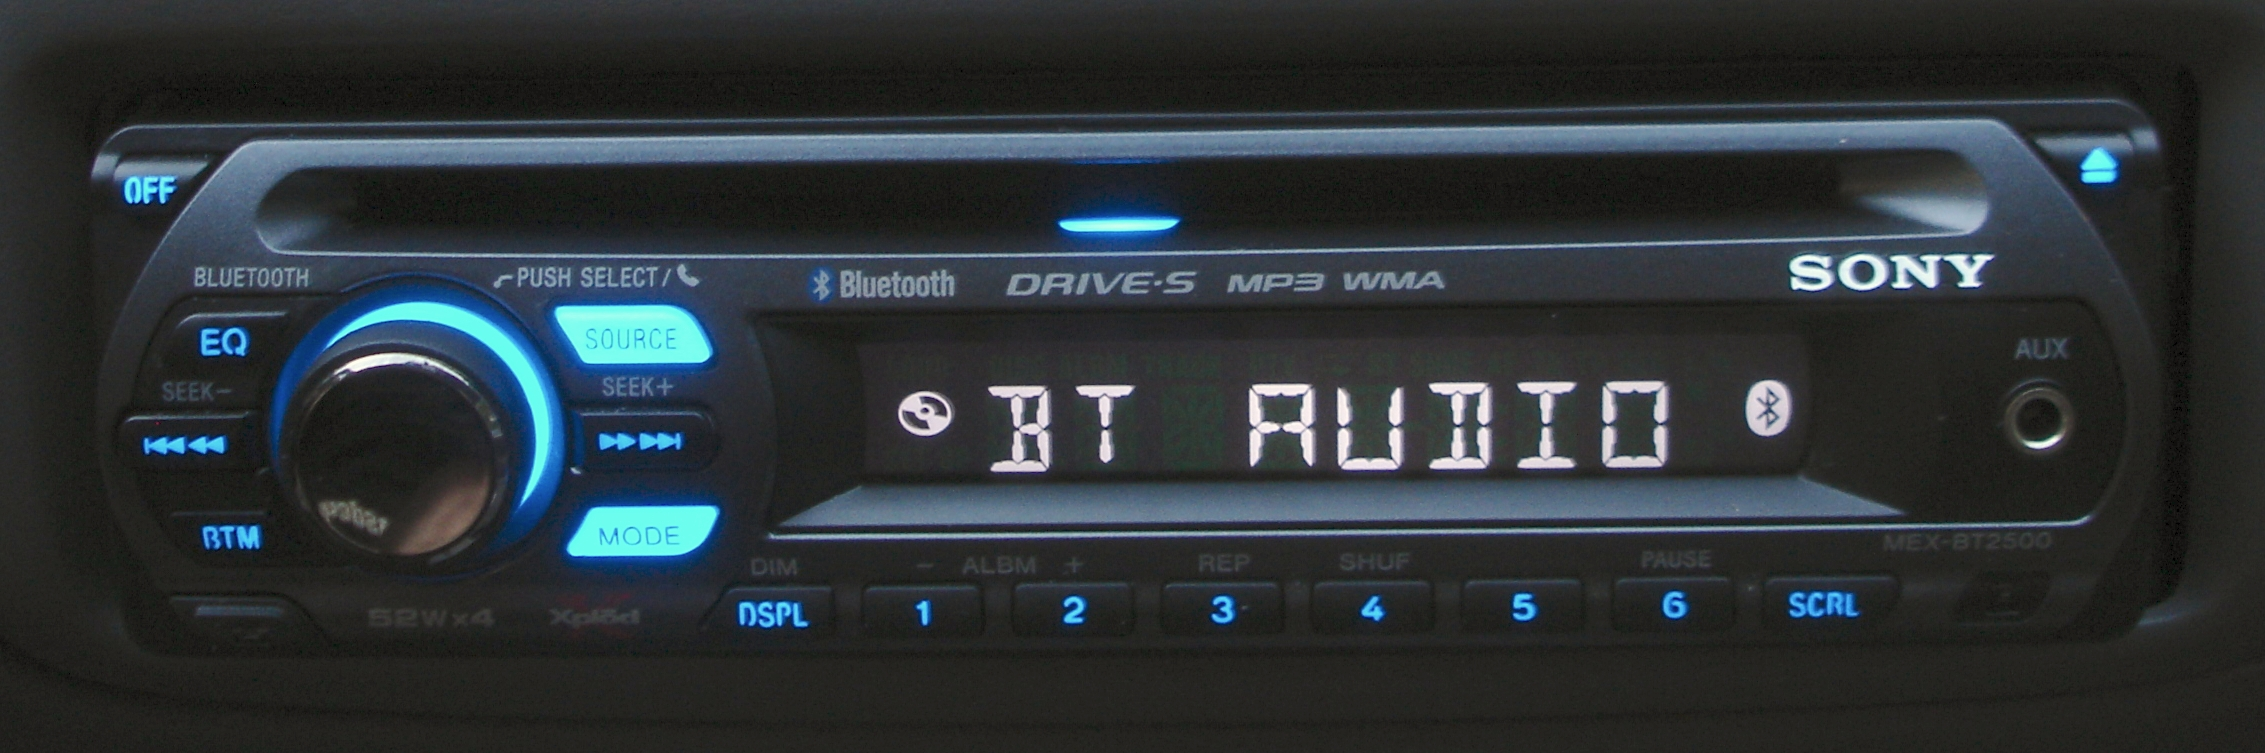 Manual Sony Mex Bt2500 Auto Electrical Wiring Diagram Bluetooth Speaker Free Download